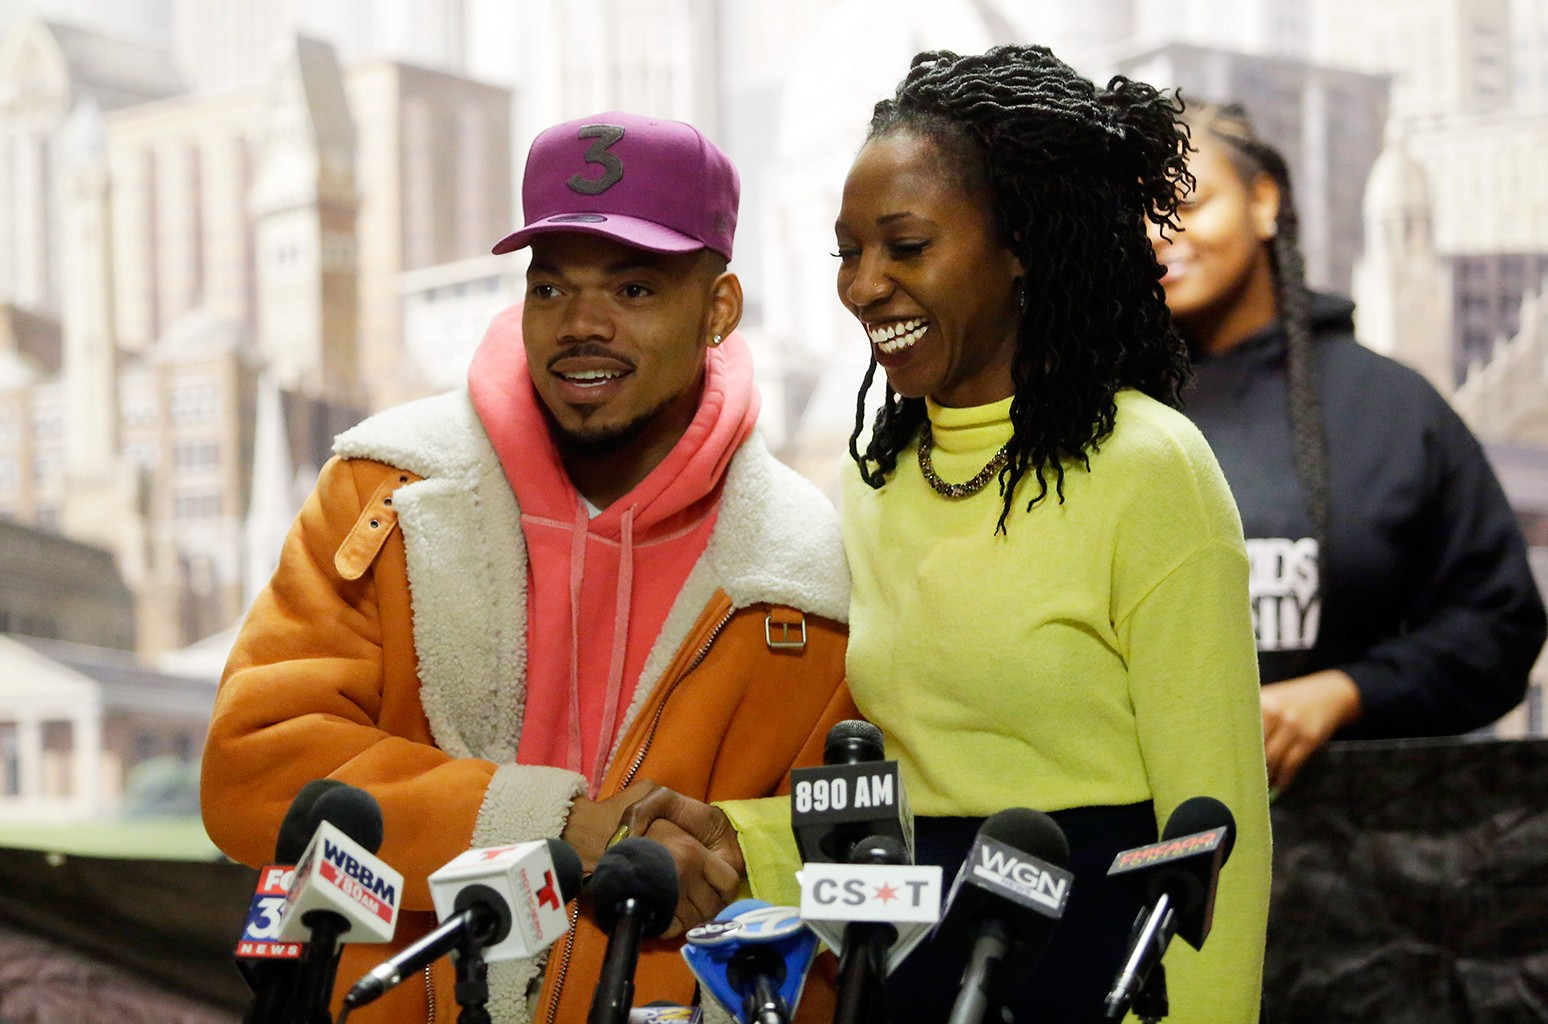 Chance The Rapper and Amara Enyia